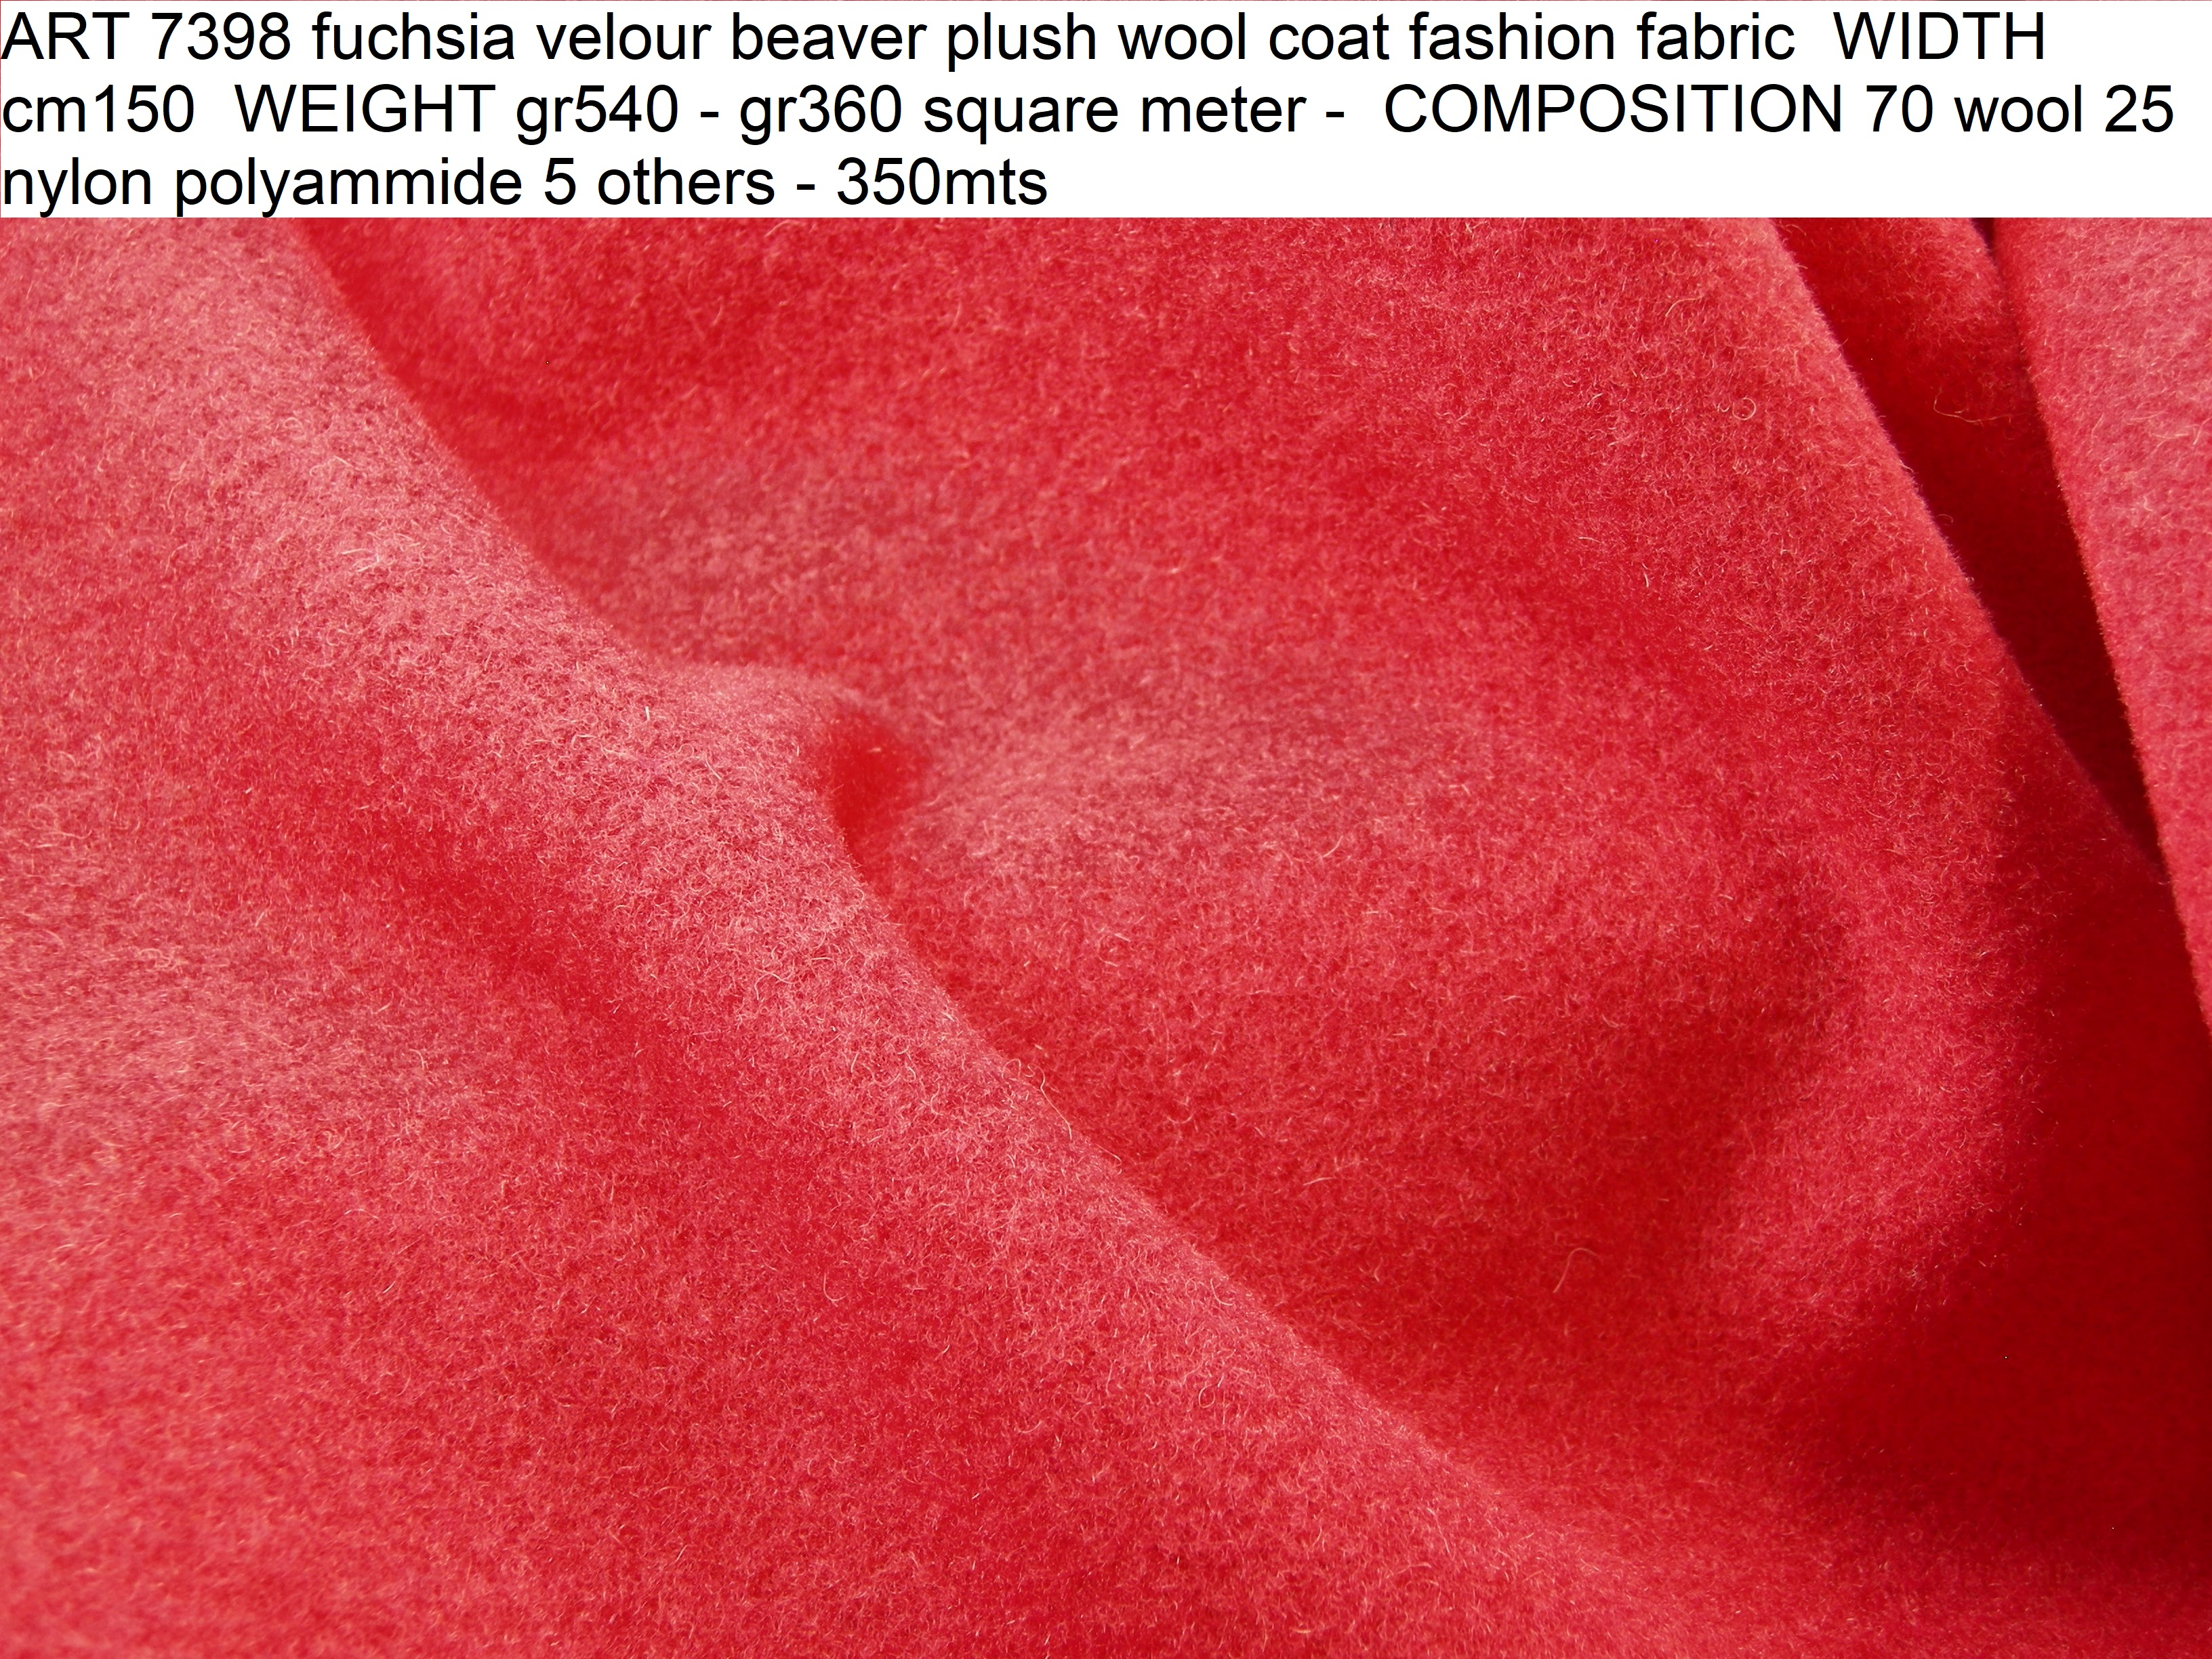 ART 7398 fuchsia velour beaver plush wool coat fashion fabric WIDTH cm150 WEIGHT gr540 - gr360 square meter - COMPOSITION 70 wool 25 nylon polyammide 5 others - 350mts